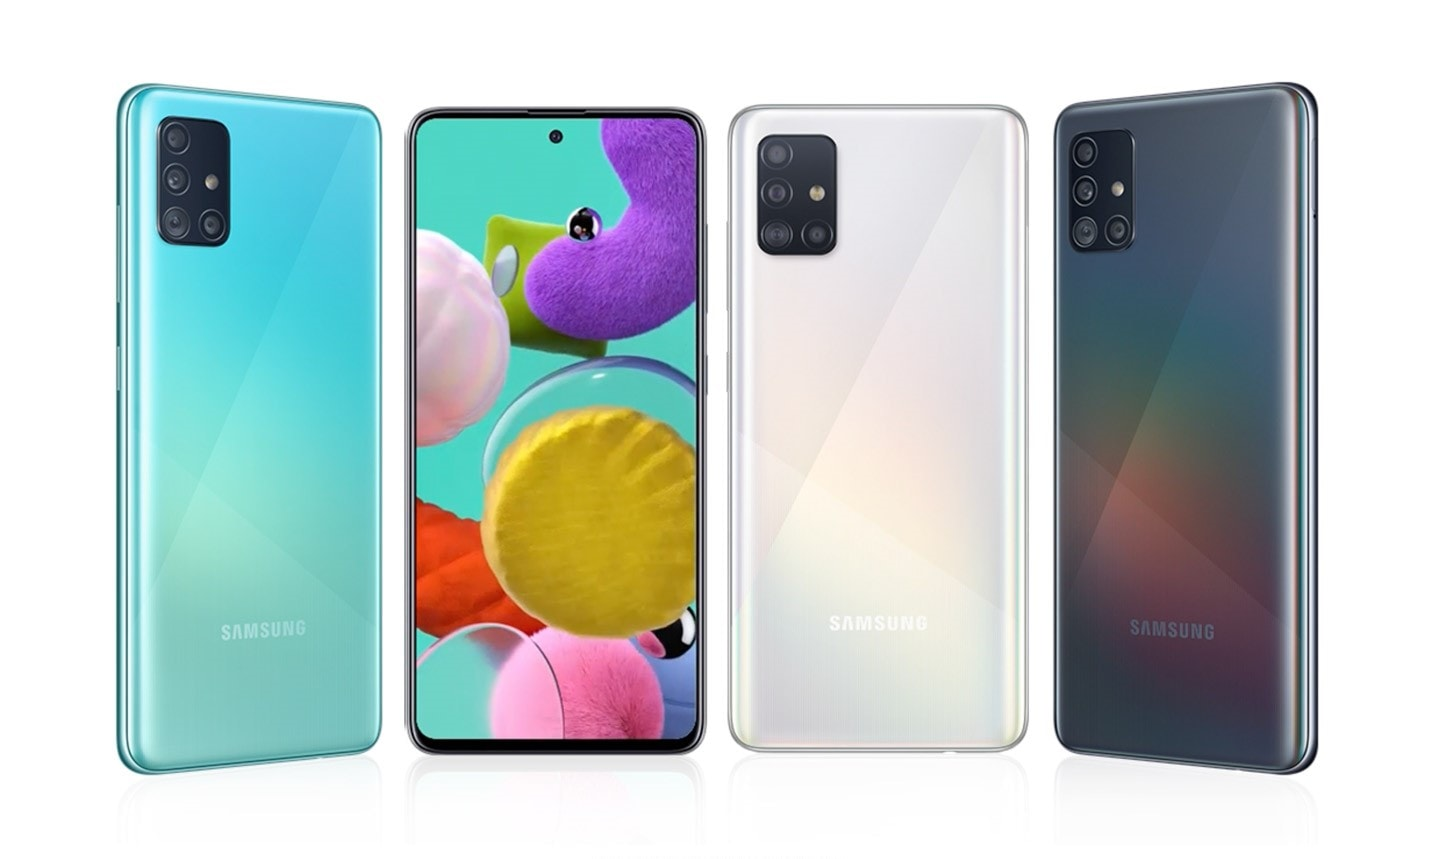 "Samsung Galaxy A51 is an awesome android smartphone in Samsung Galaxy A Series review - features, specs, release date, price, launch and latest system upgrades. It has 16.40cm (6.5"") Infinity-O sAMOLED display, 48MP Quad camera, 6GB RAM +128GB storage and  4,000mAh battery with 15W Fast charging."